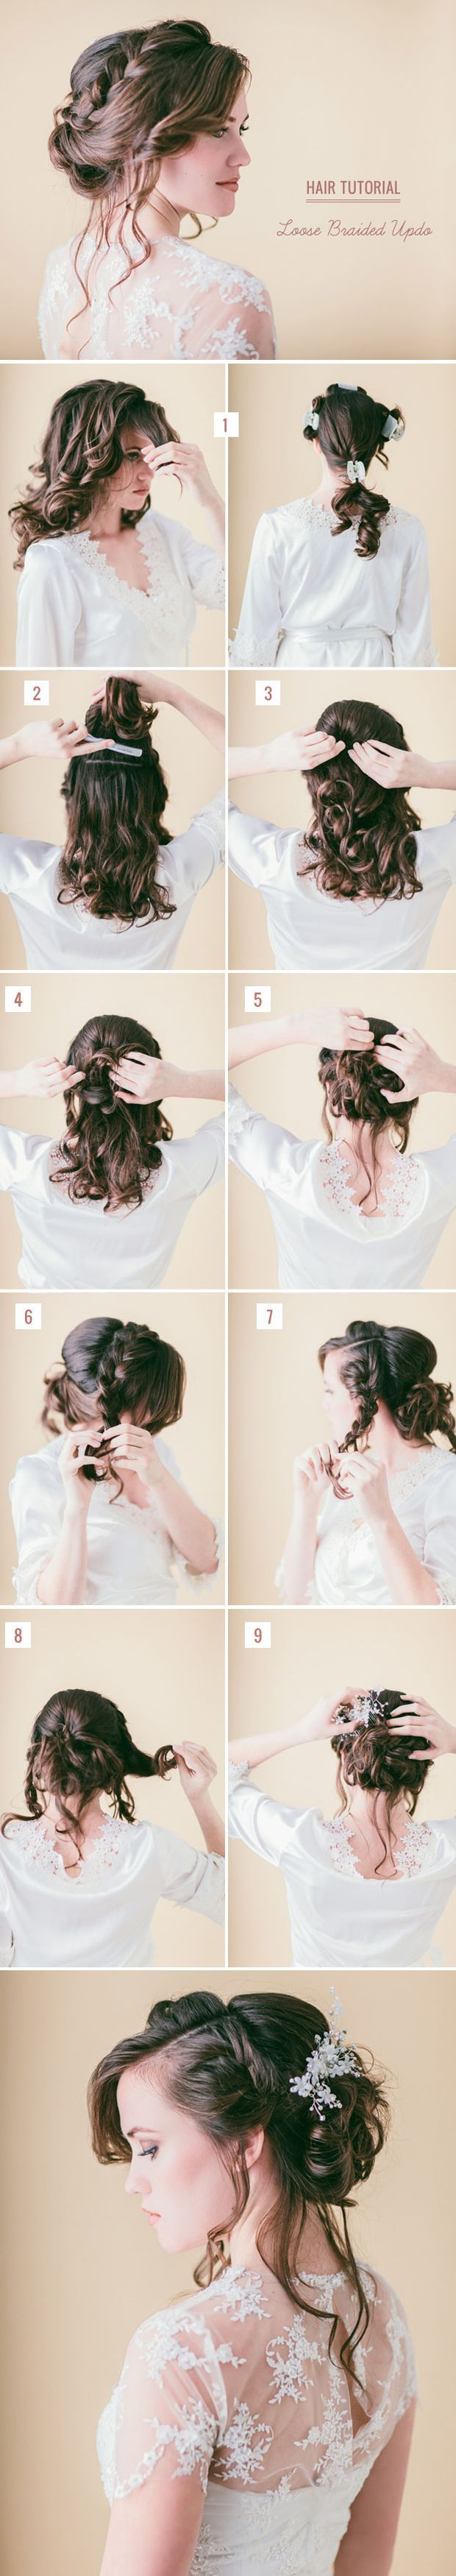 loose braided updo diy wedding hairstyles ideas